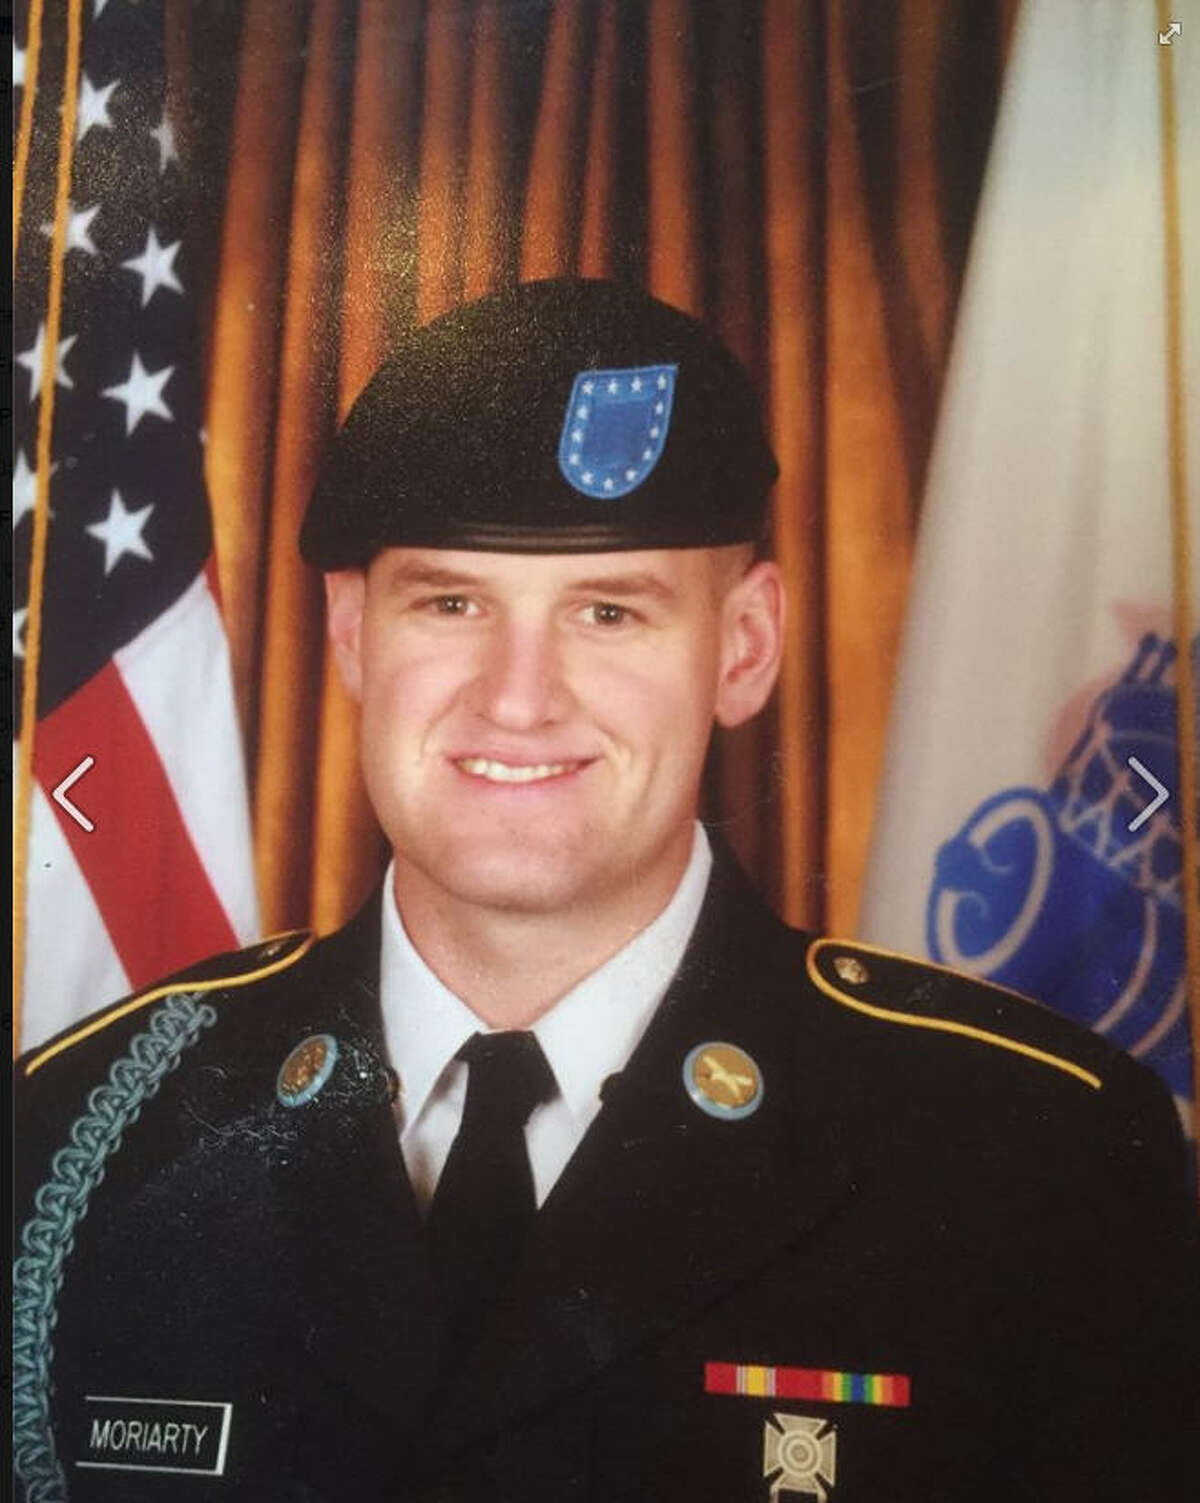 """James """"Jimmy"""" Moriarty of Houston was one of three Americans killed in an attack on a military base in Jordan on Friday, Nov. 4, 2016."""